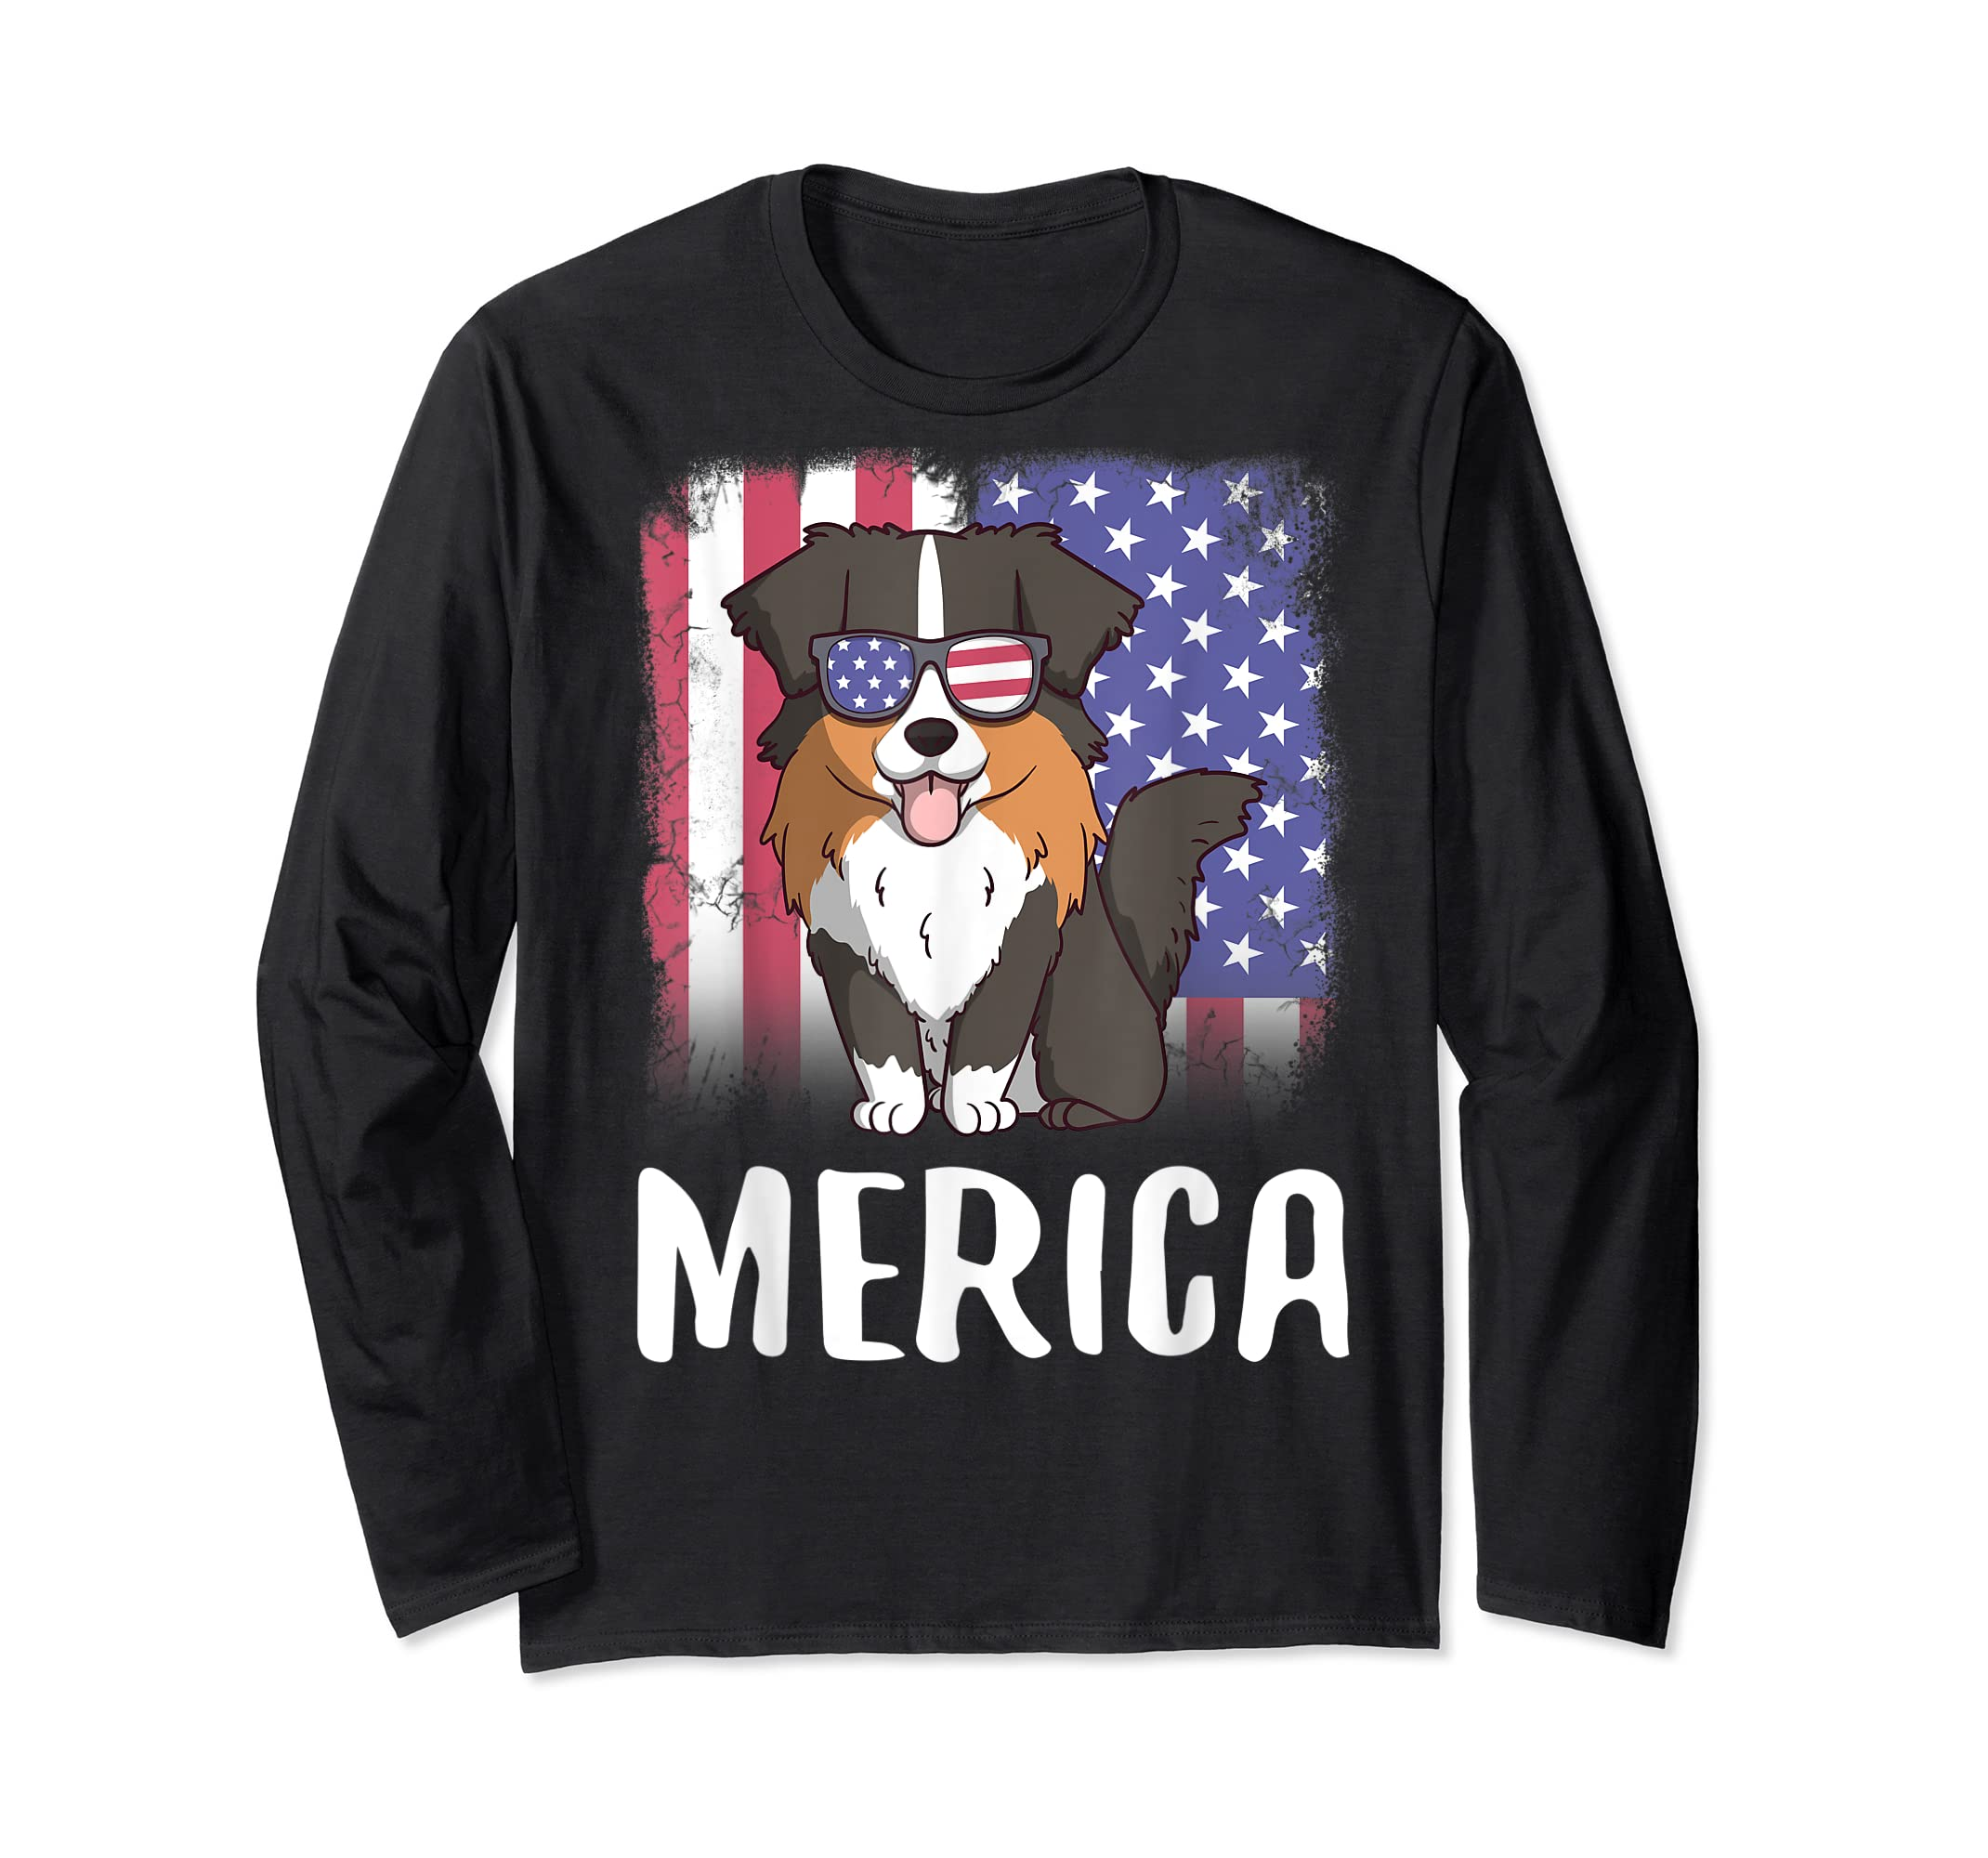 Merica Australian Shepherd Dog USA American Flag 4th of July T-Shirt-Long Sleeve-Black